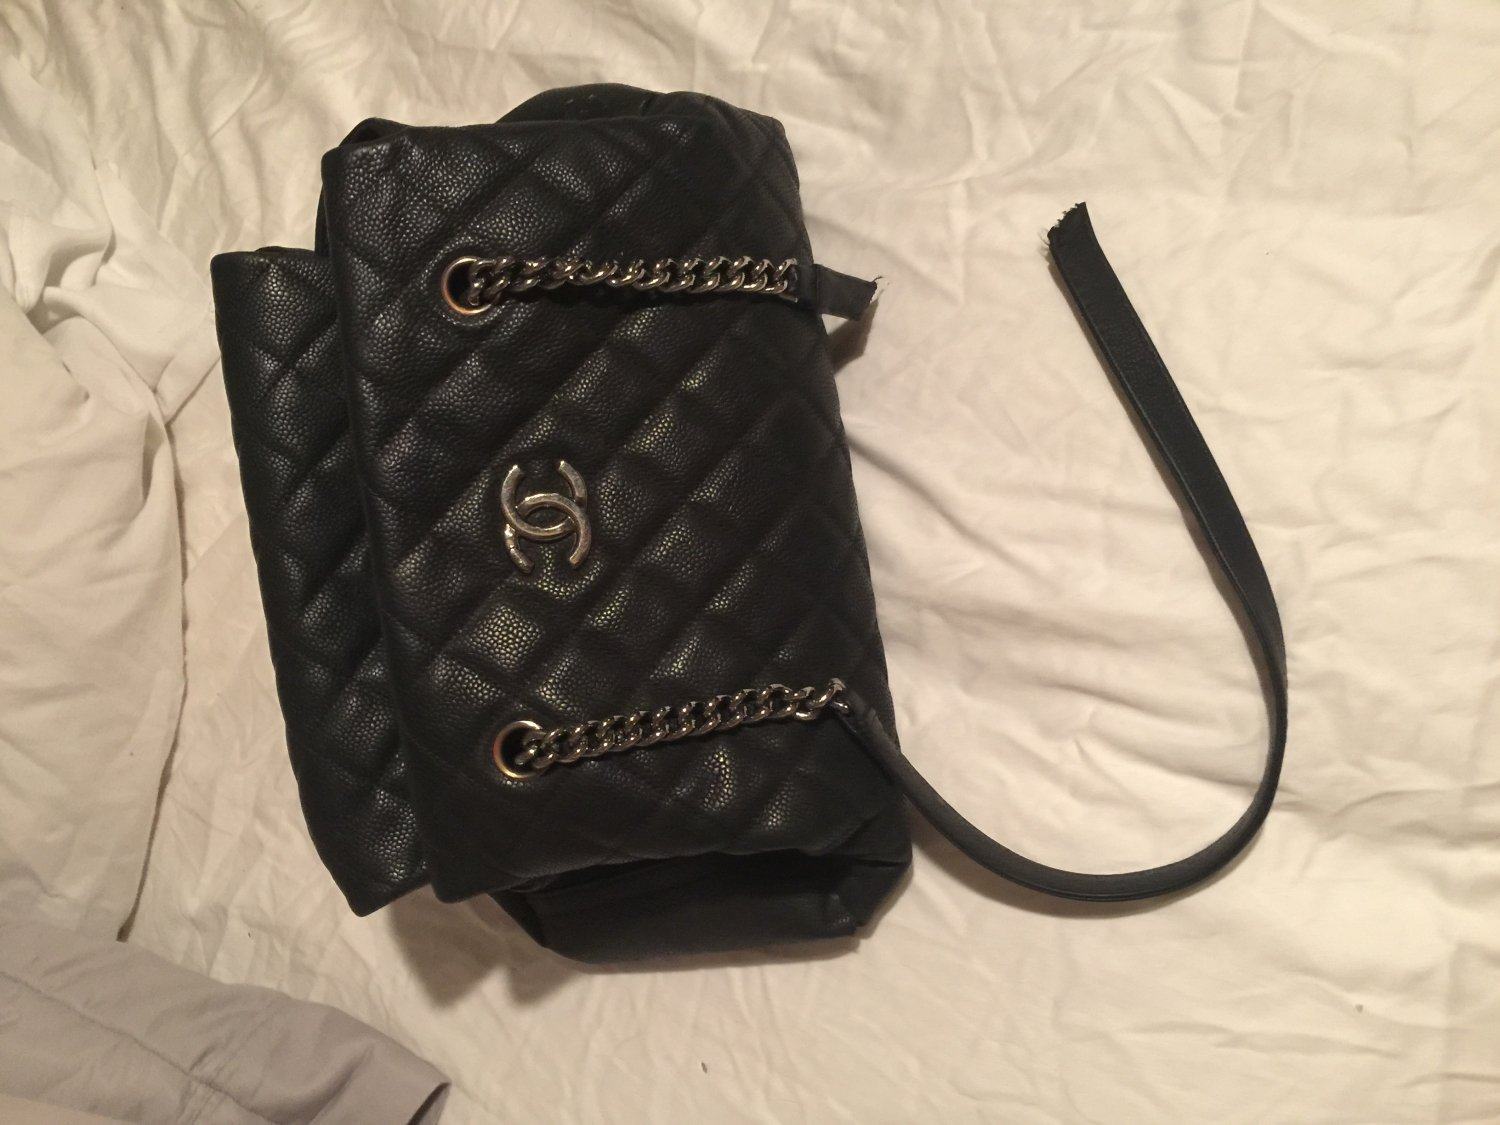 celine bags to buy online - Can A Broken Chanel Bag Be Repaired? | Bragmybag